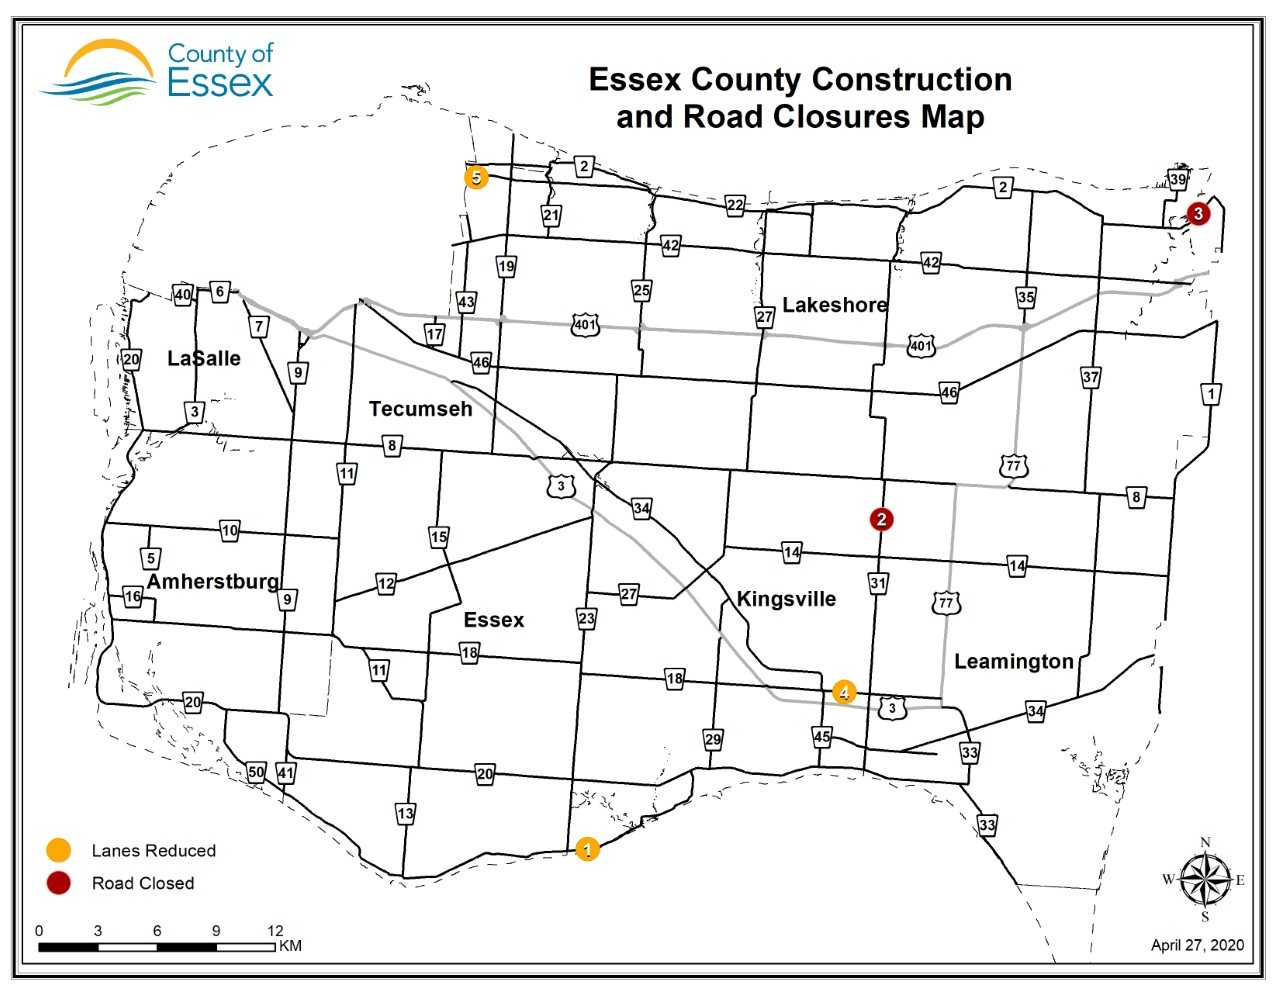 A map of Essex County showing road closures and lane restrictions for April 28, 2020.